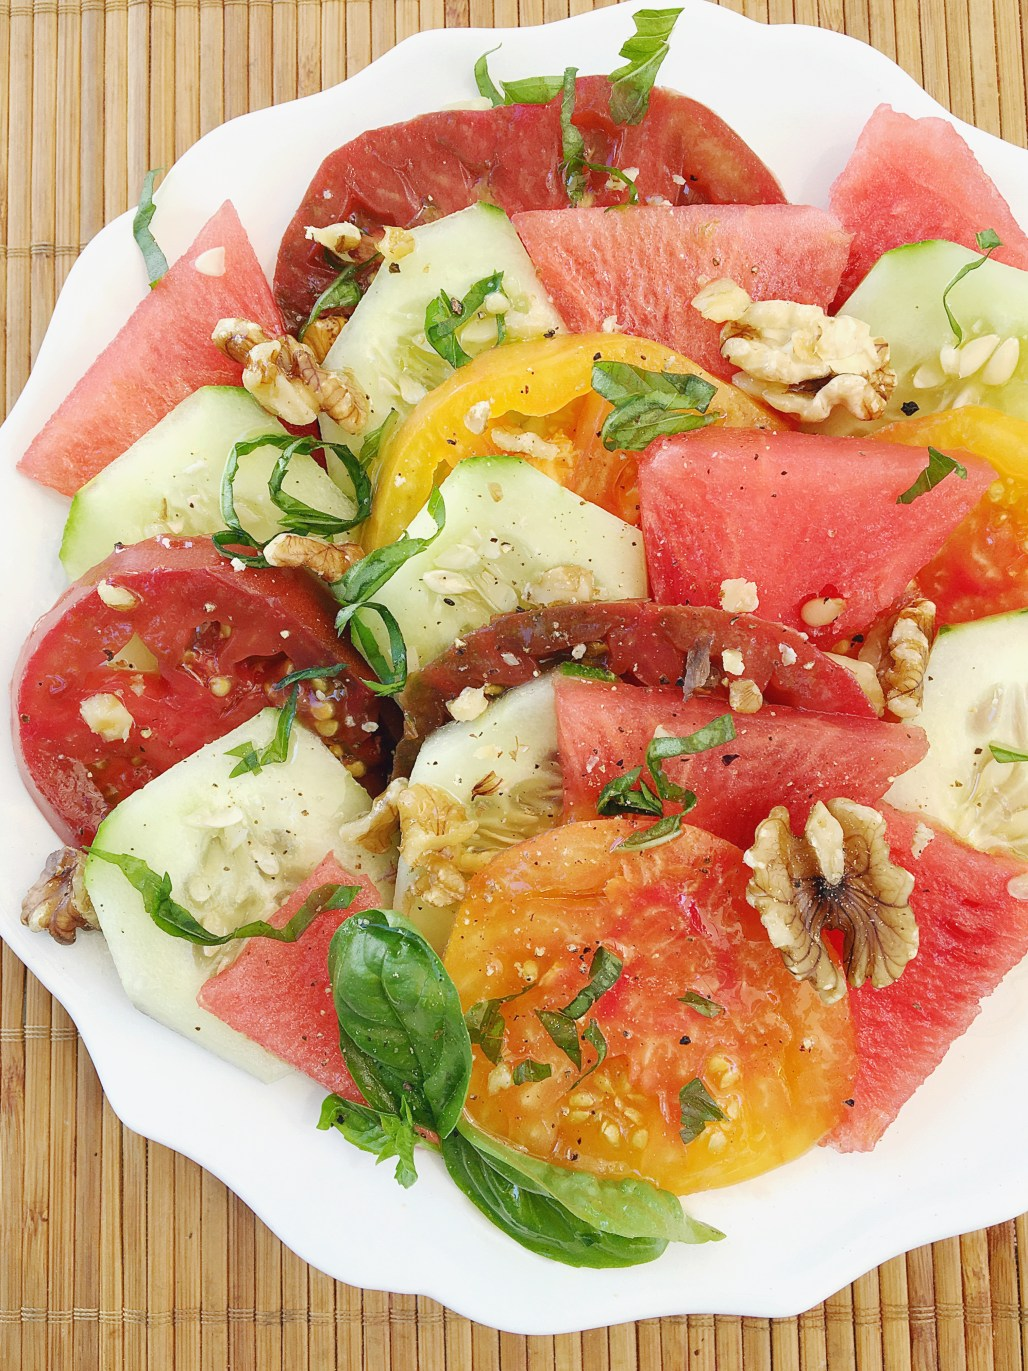 Watermelon, Heirloom Tomato & Cucumber Salad